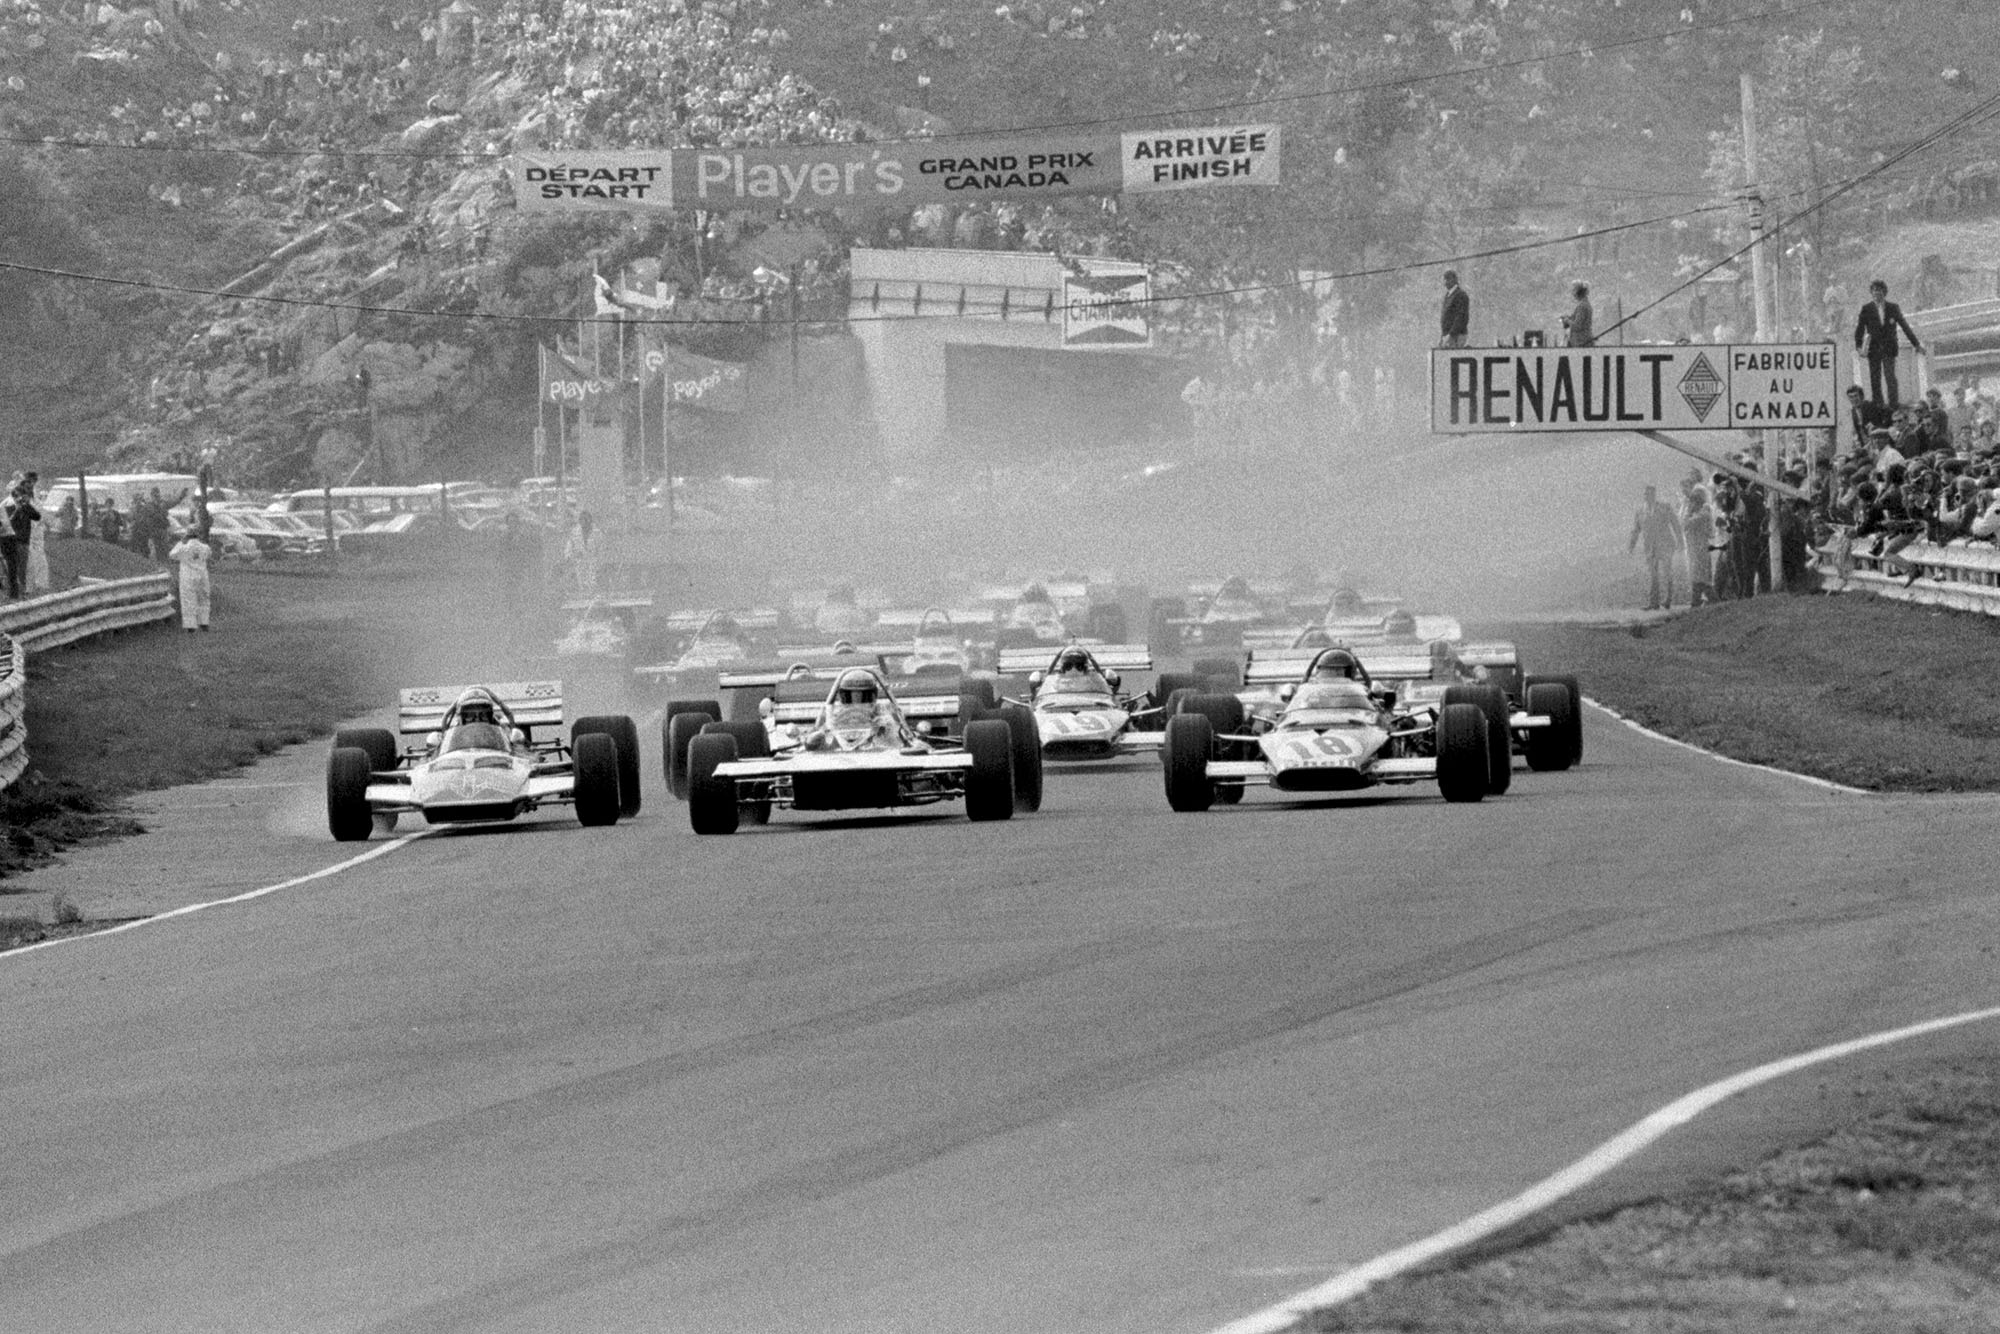 The cars pull away from the grid at the 1970 Canadian Grand Prix